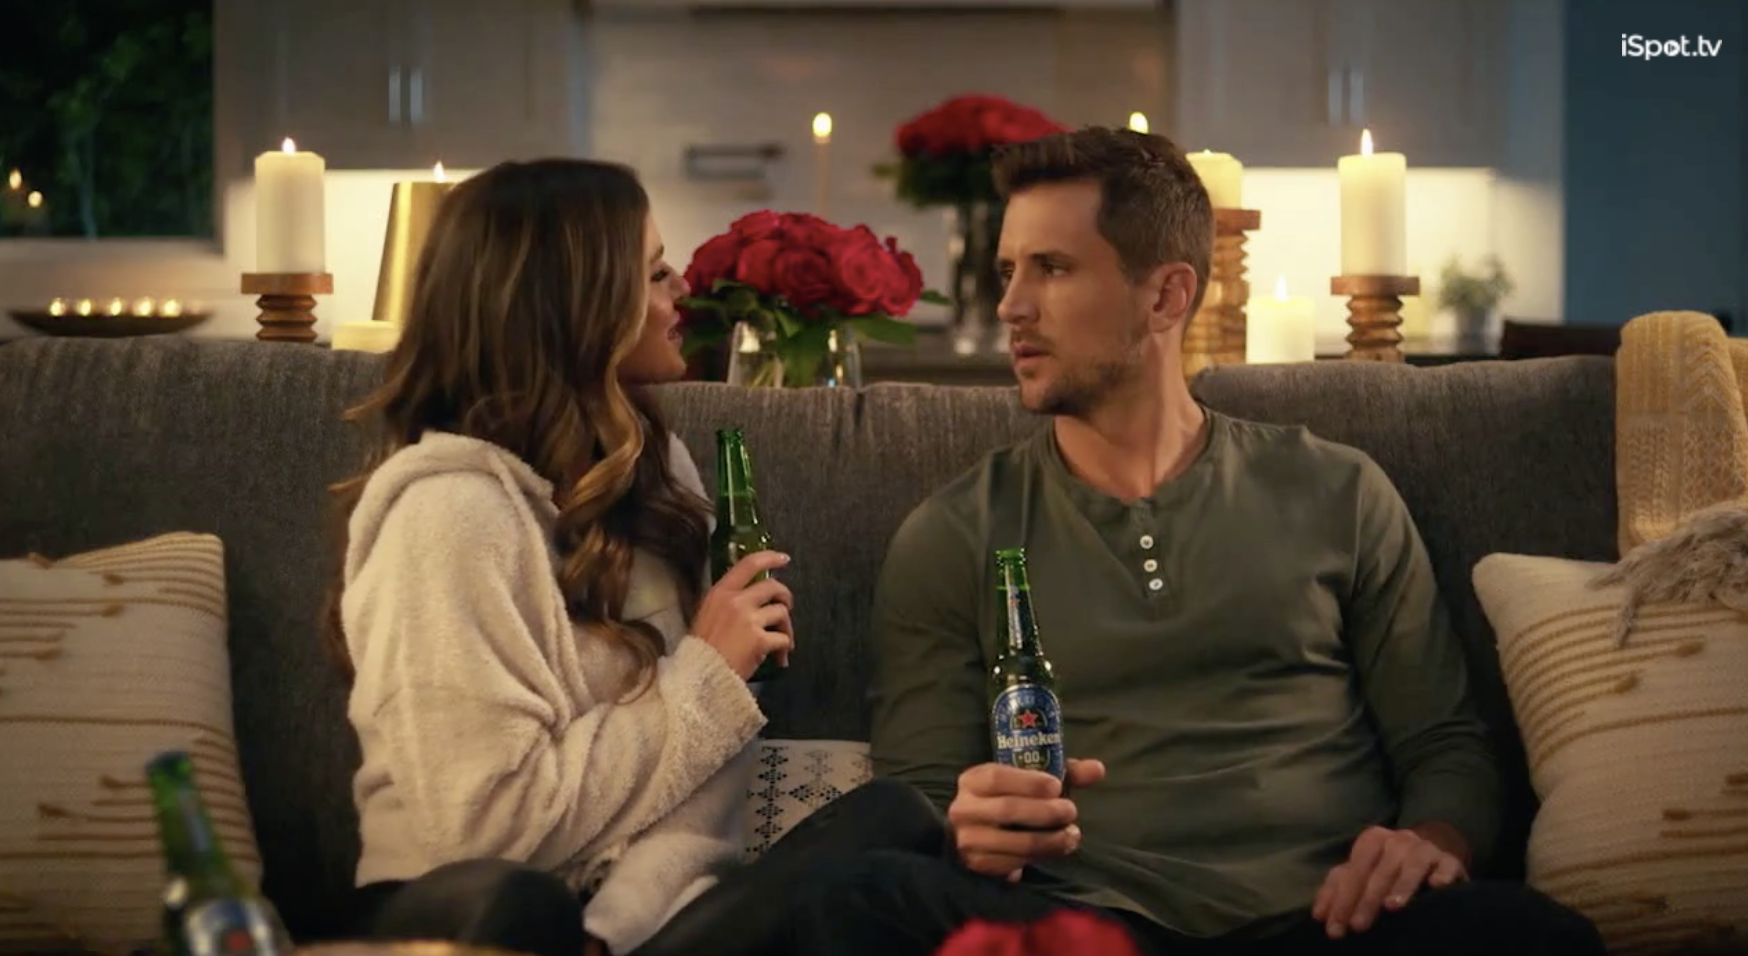 Should Alcohol Brands Run Dry January Ads This Year?